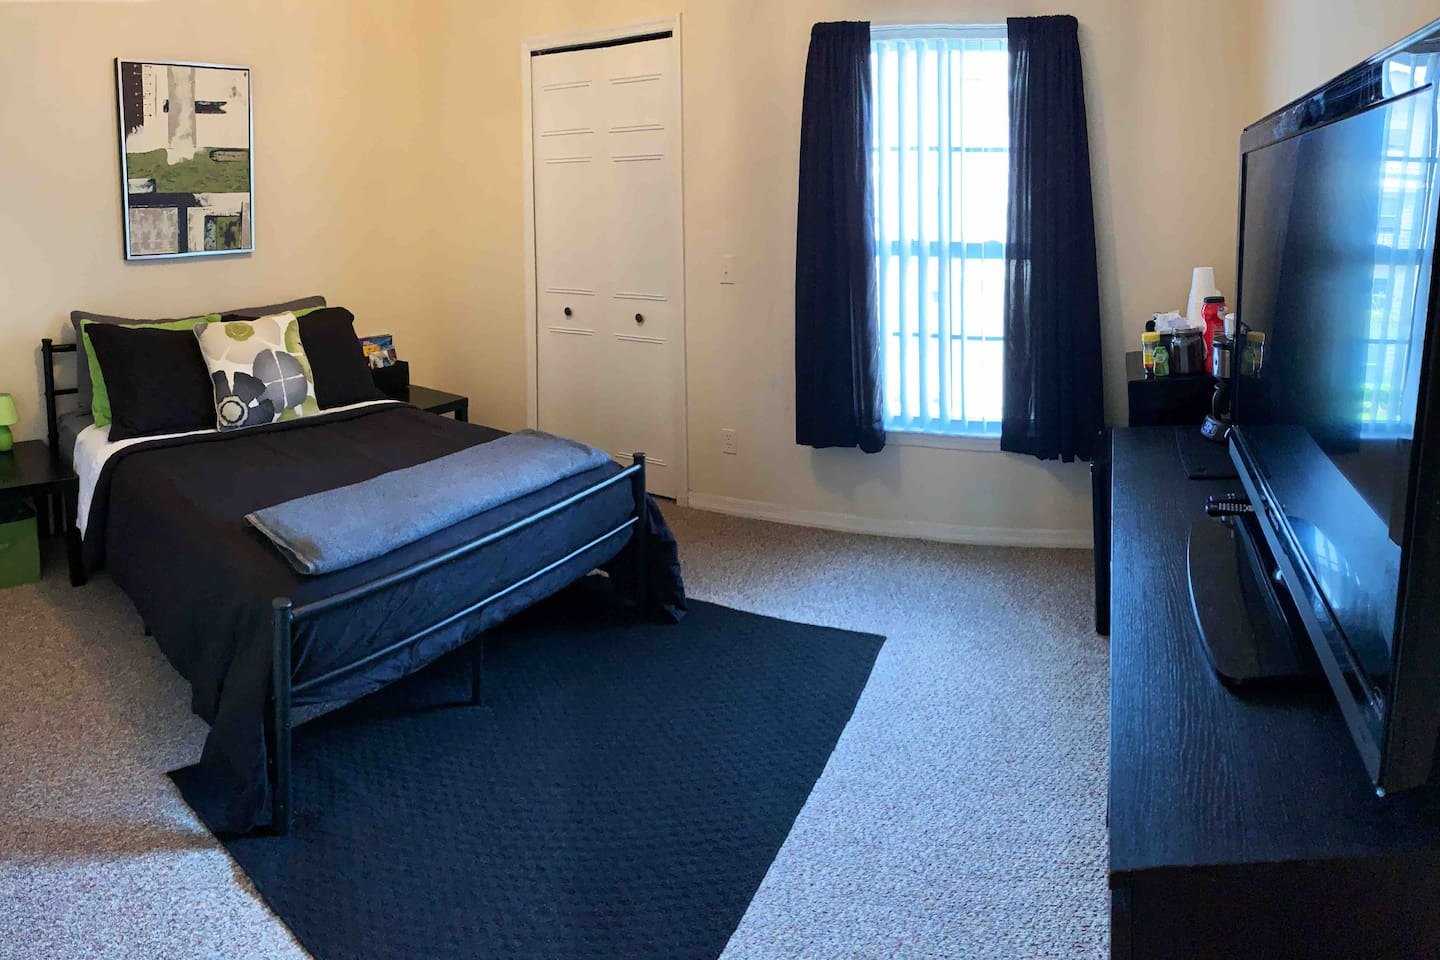 The private room comfortably sleeps 2 with lots of luggage storage space, extra linens/blankets/pillows, bedside nightstands/lamps/outlets, dresser, TV, mini fridge, microwave, coffee station, curtains, ceiling fan and closet.